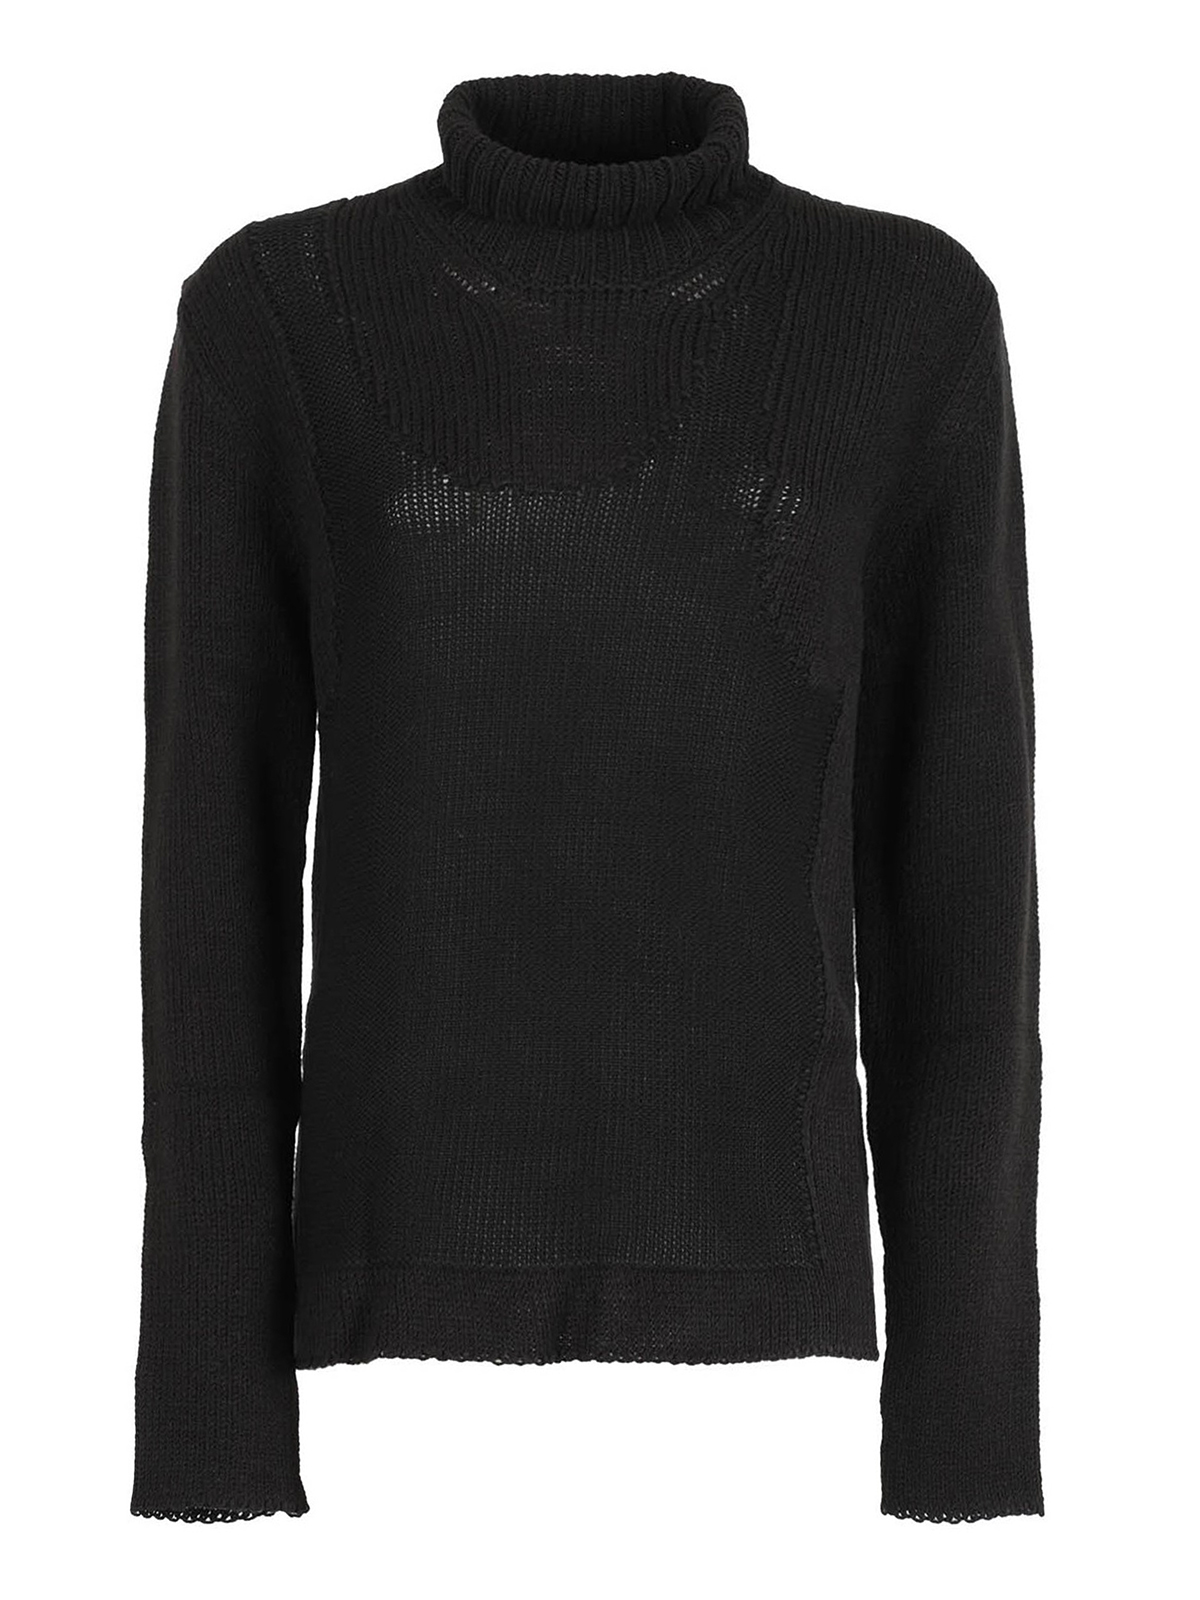 Mm6 Maison Margiela COTTON AND WOOL BLEND TURTLENECK